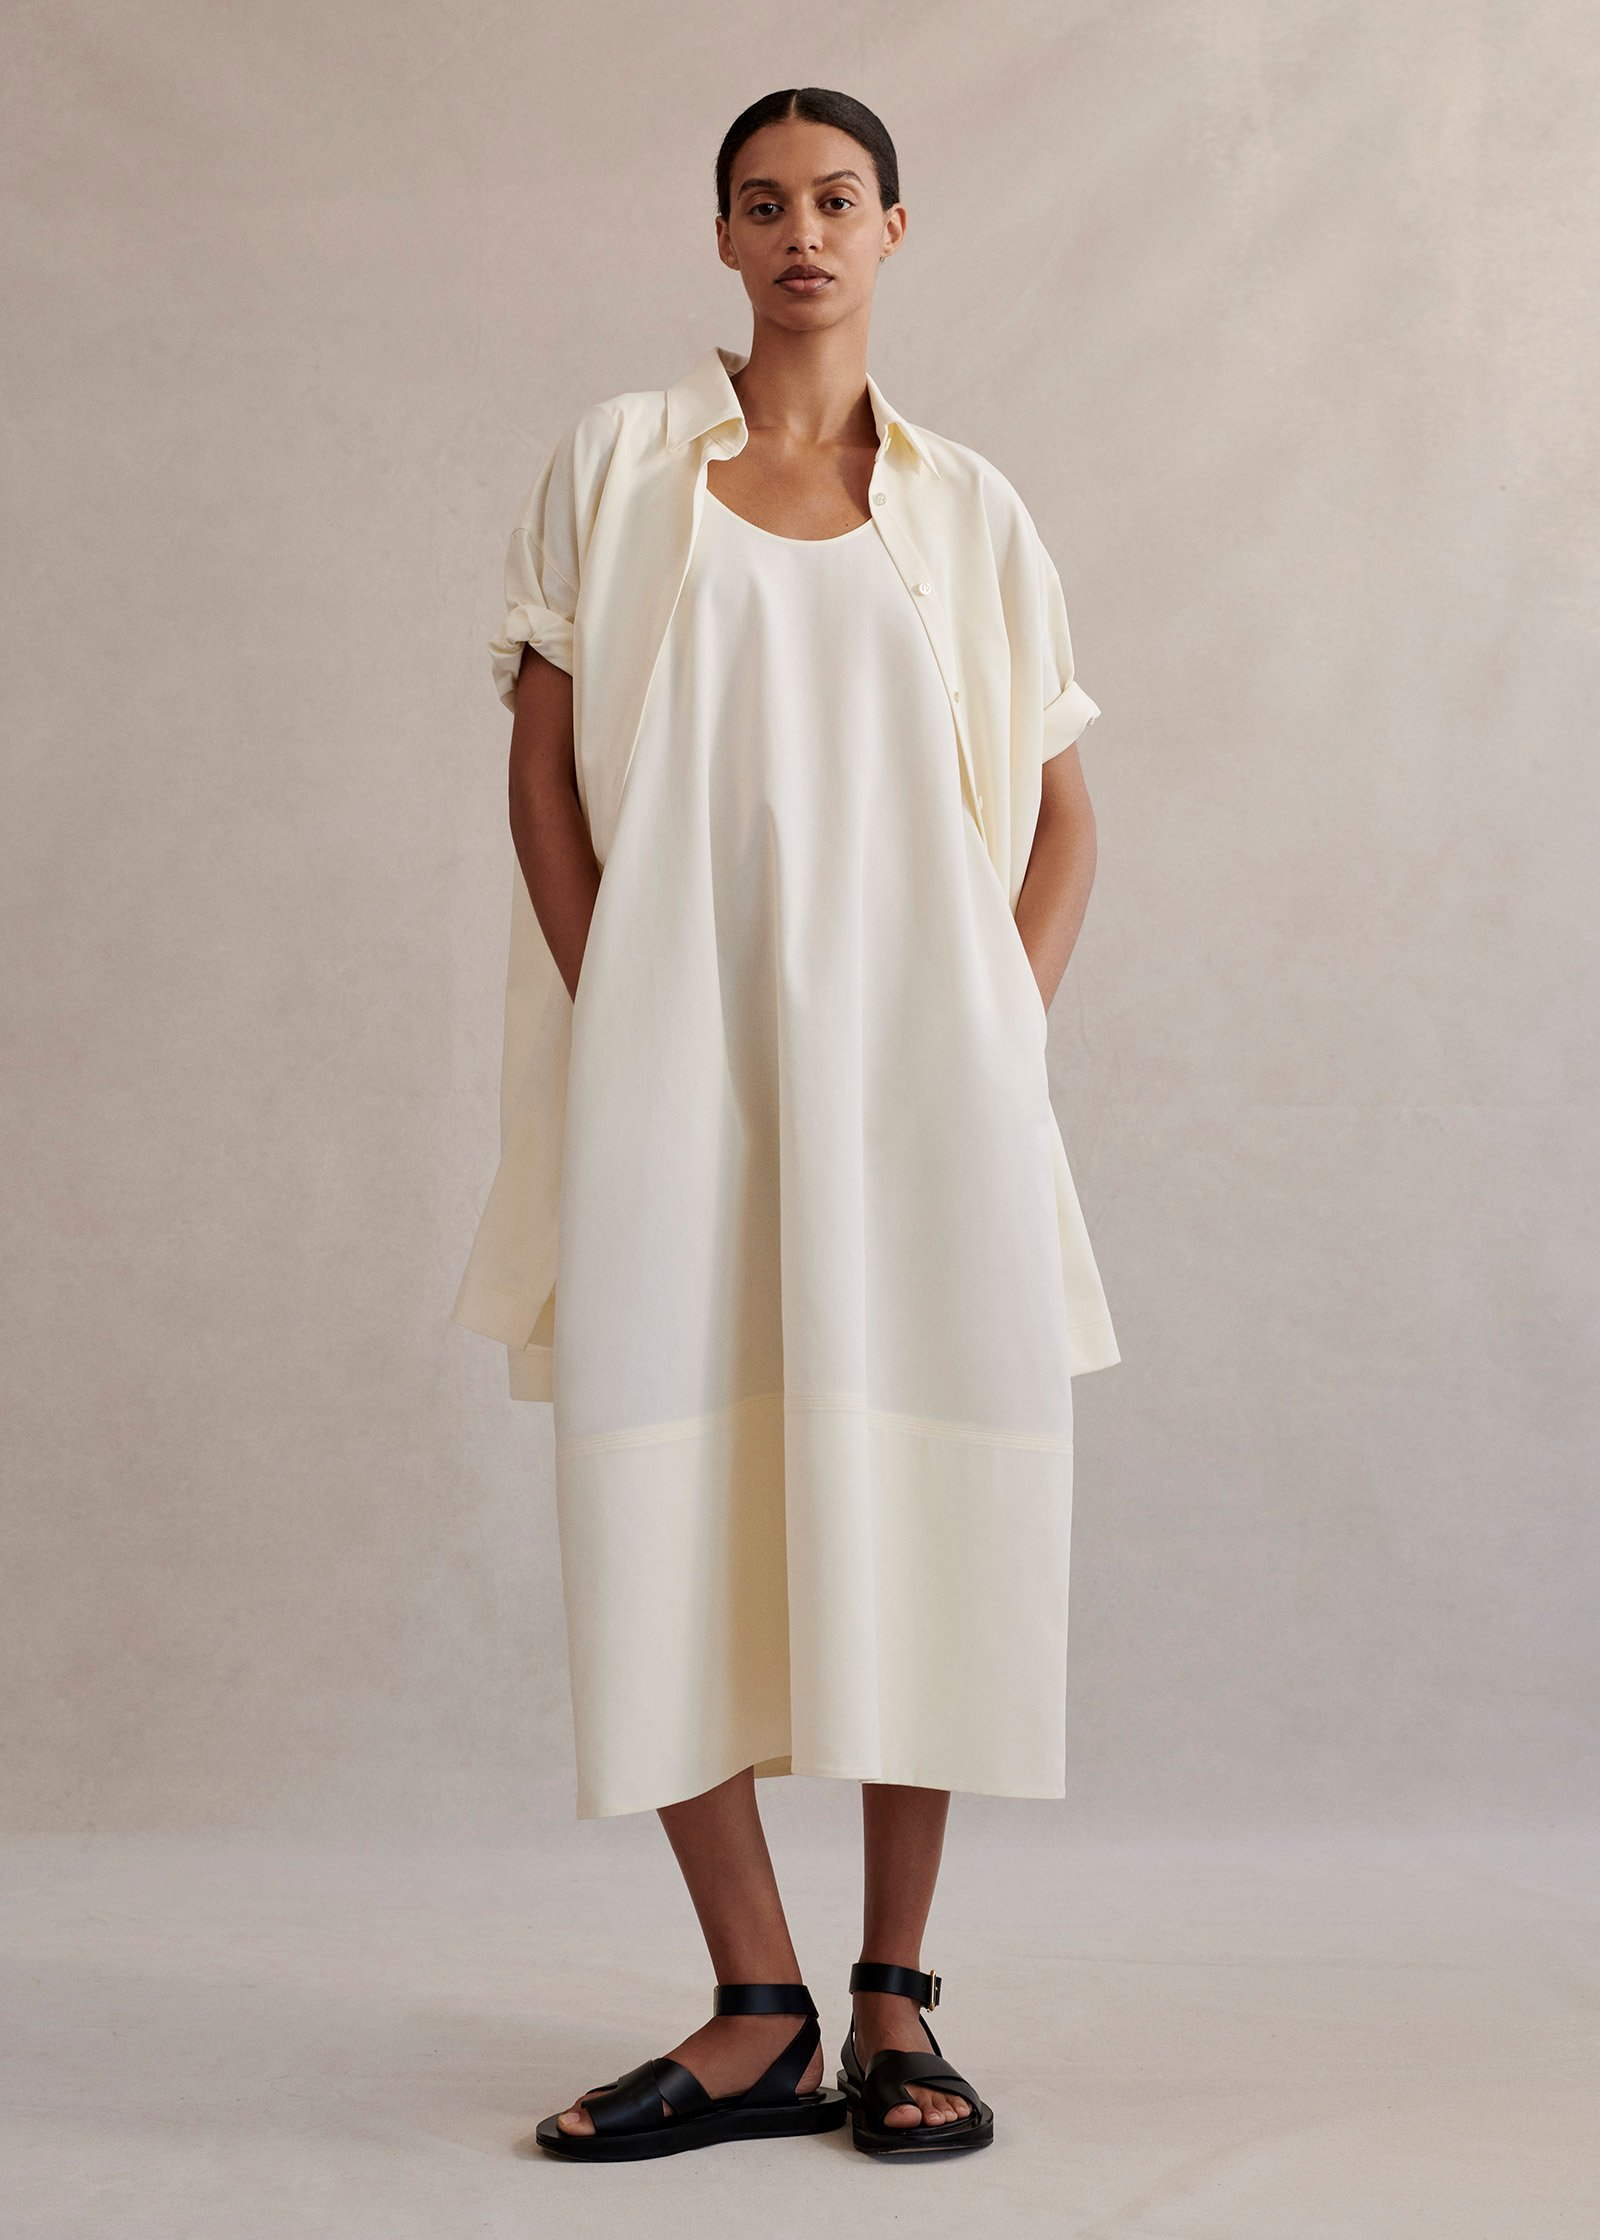 Sleeveless Bubble Dress In Cotton Crepe - Ivory - by Zoe Gherter for Co